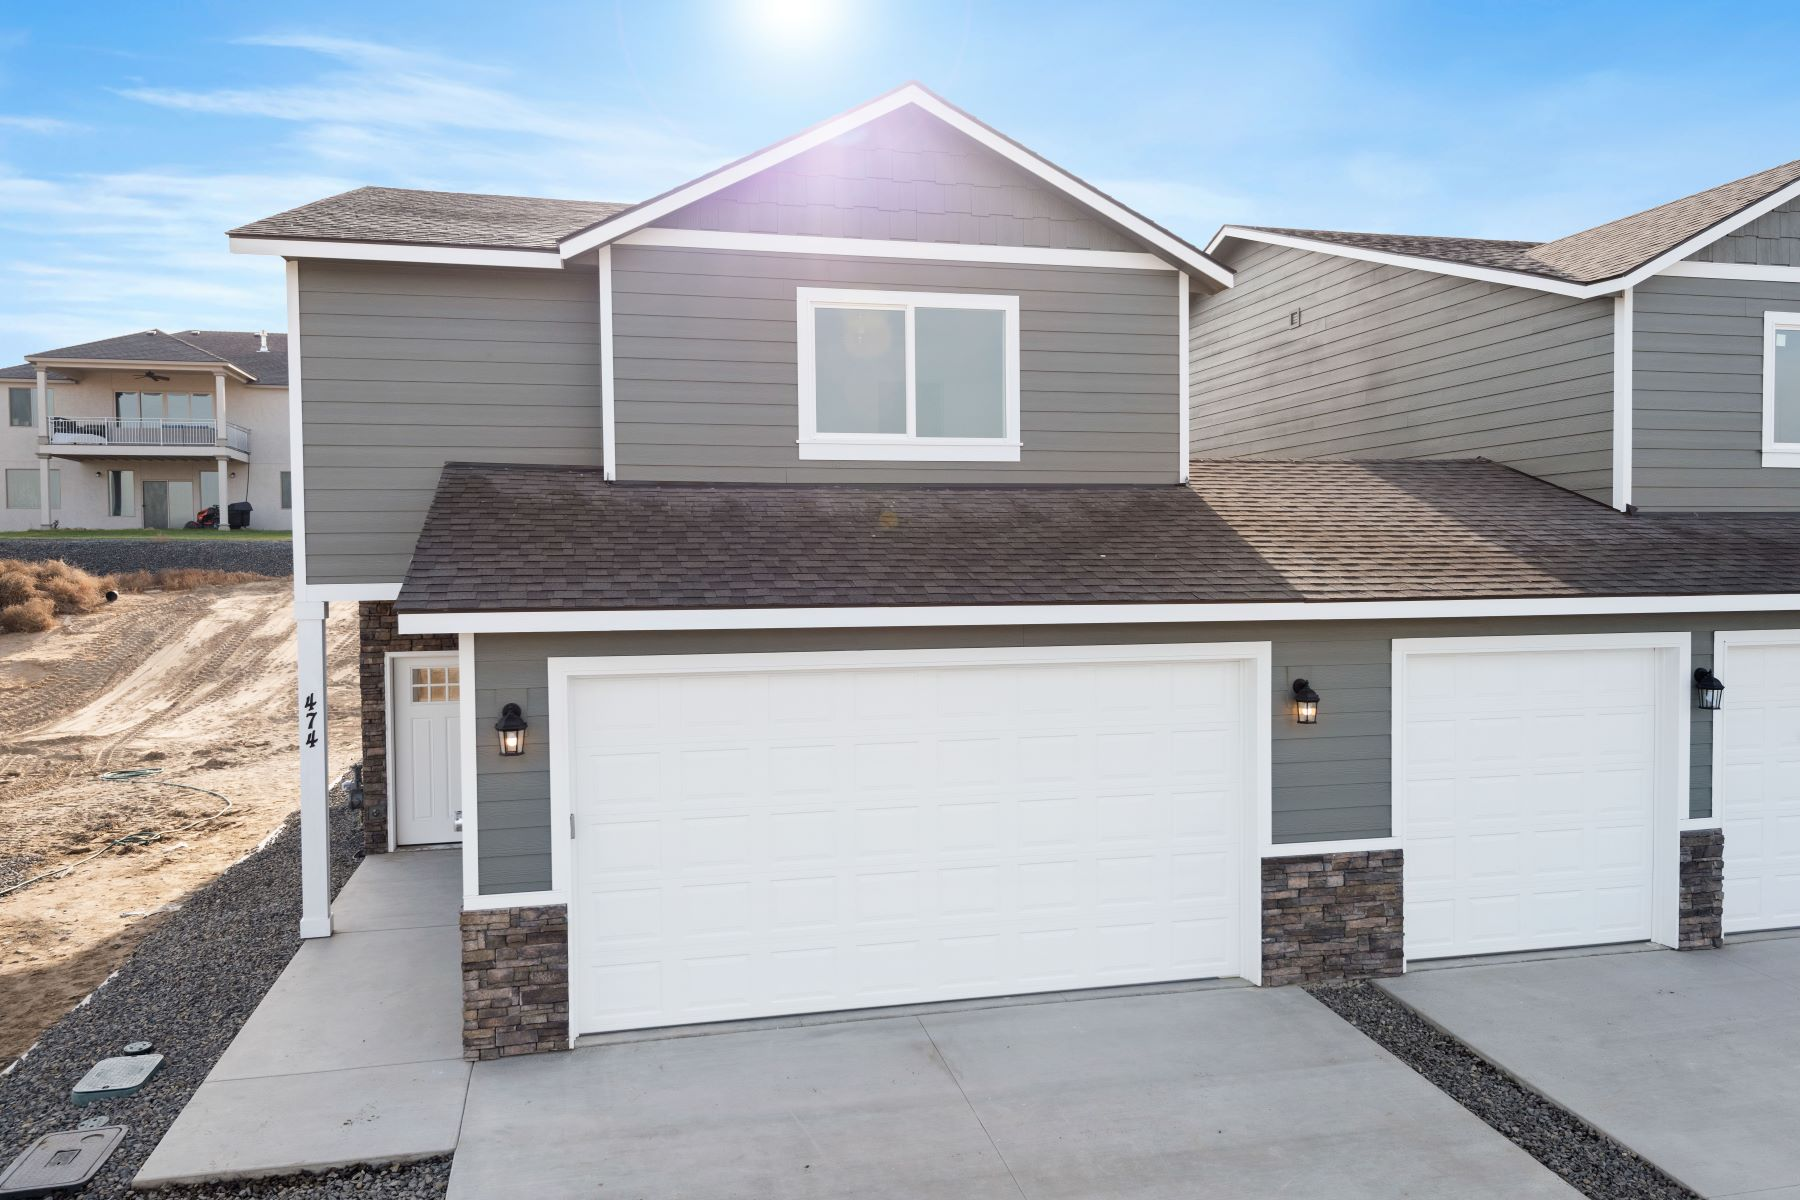 townhouses for Sale at New townhome community with views! 462 Bedrock Loop, West Richland, Washington 99353 United States